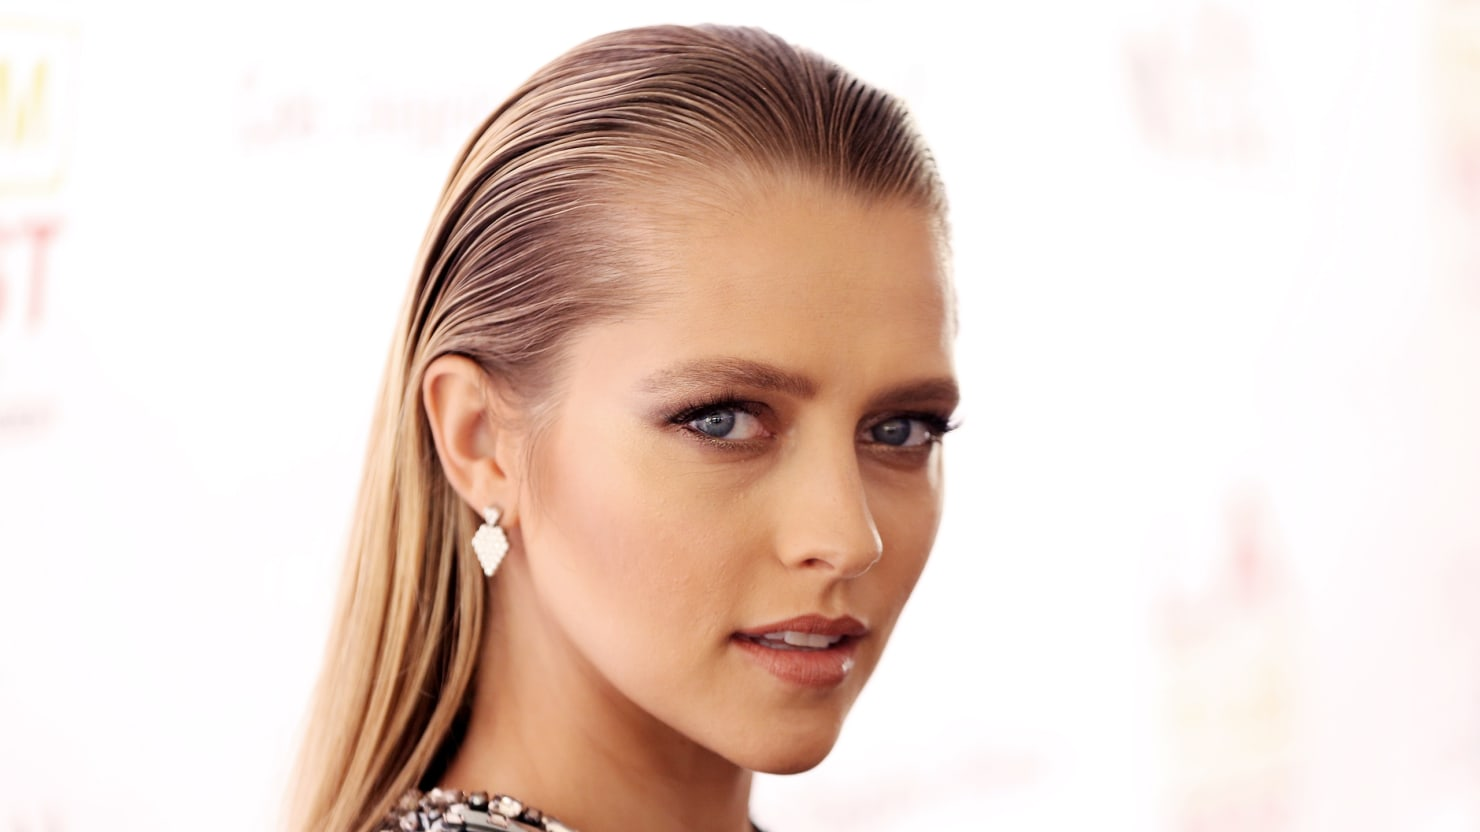 Teresa palmer having sex are